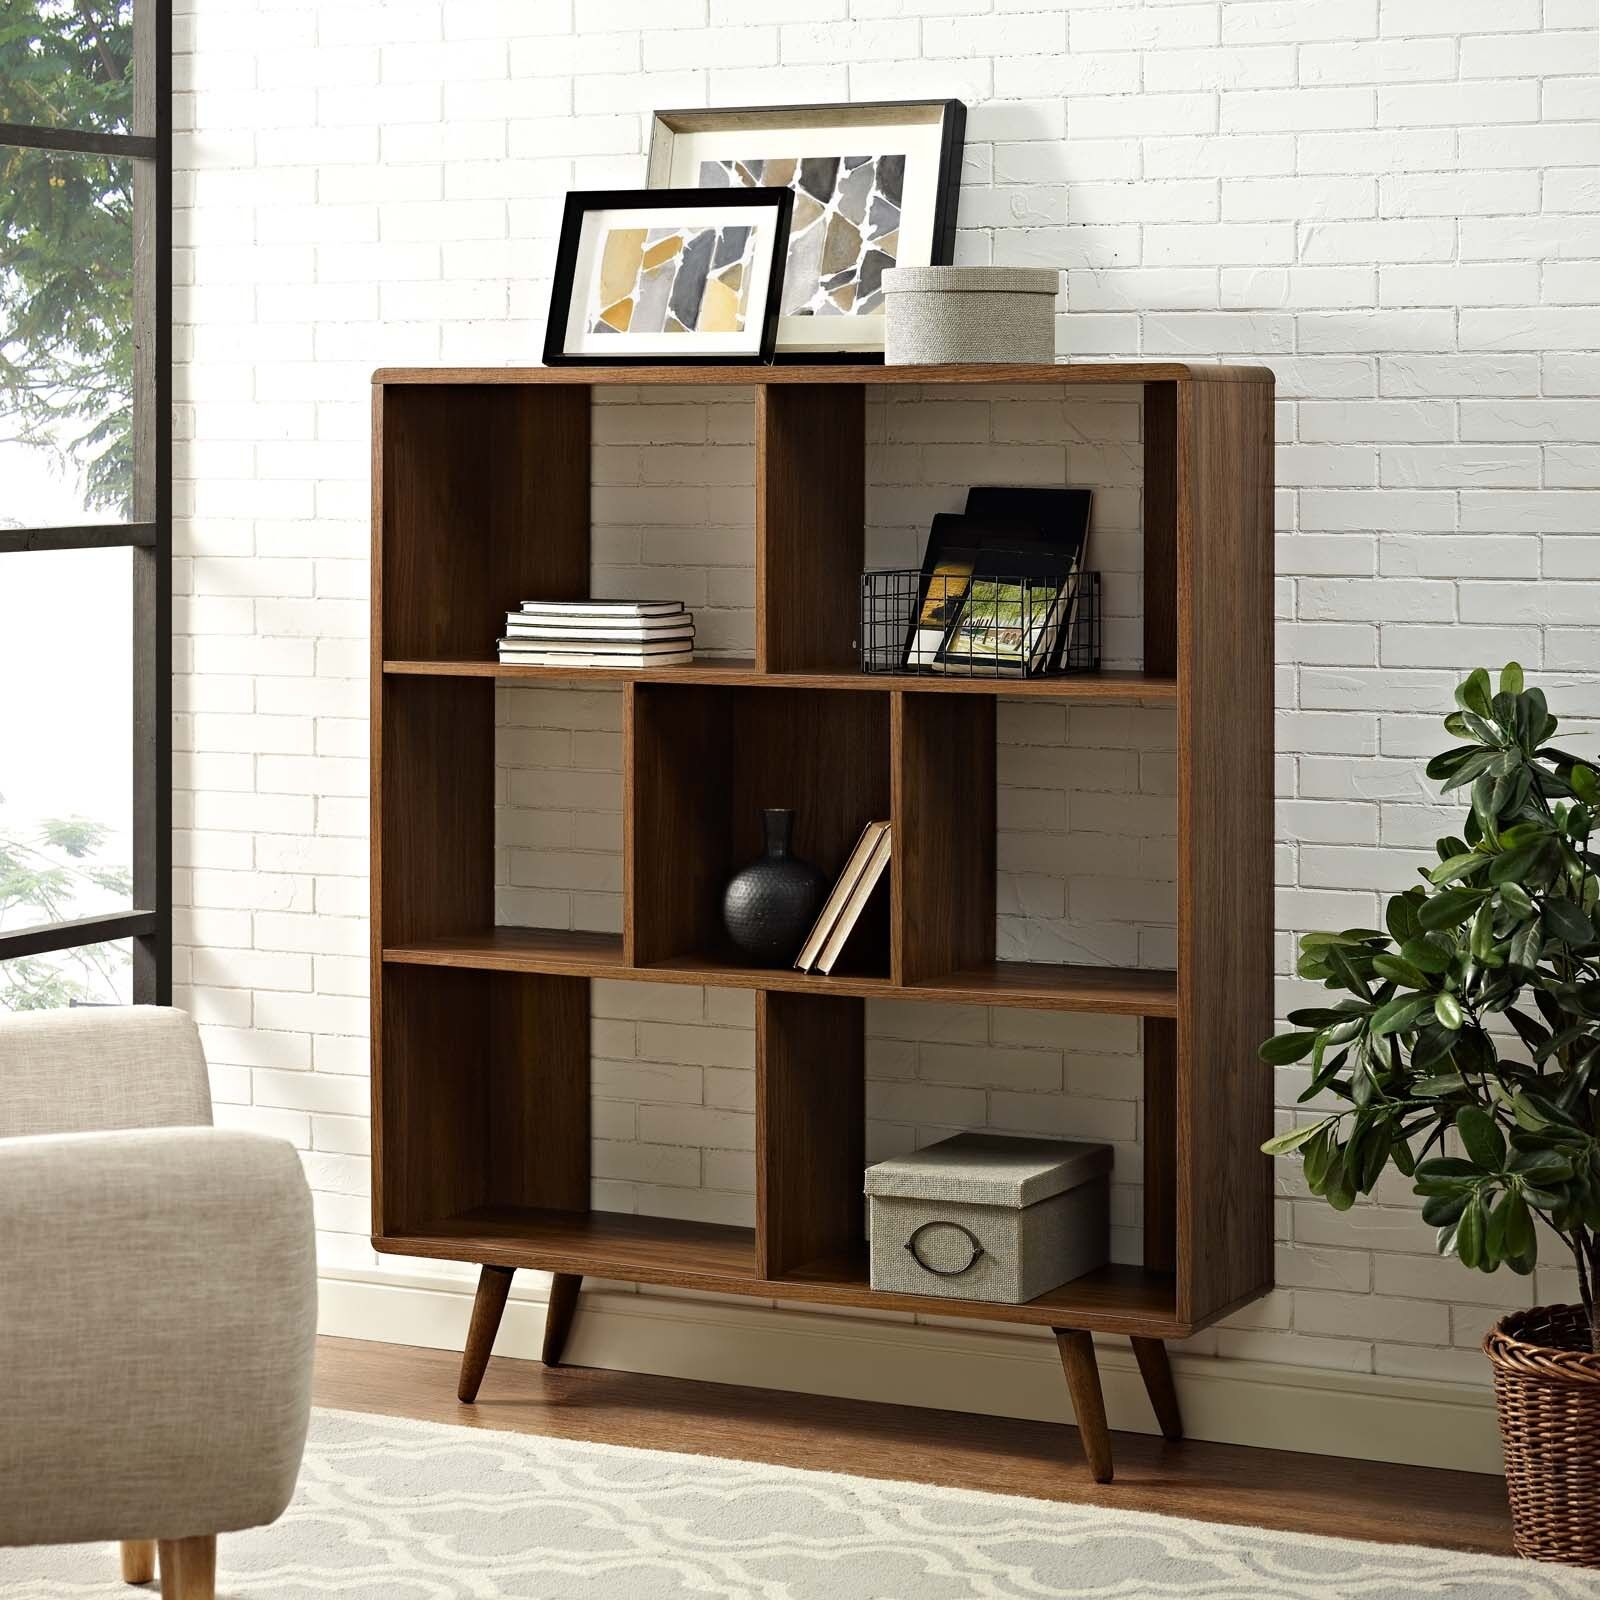 Details About Mid Century Modern Cube Walnut Wood Bookcase Display Shelf Organization Stand